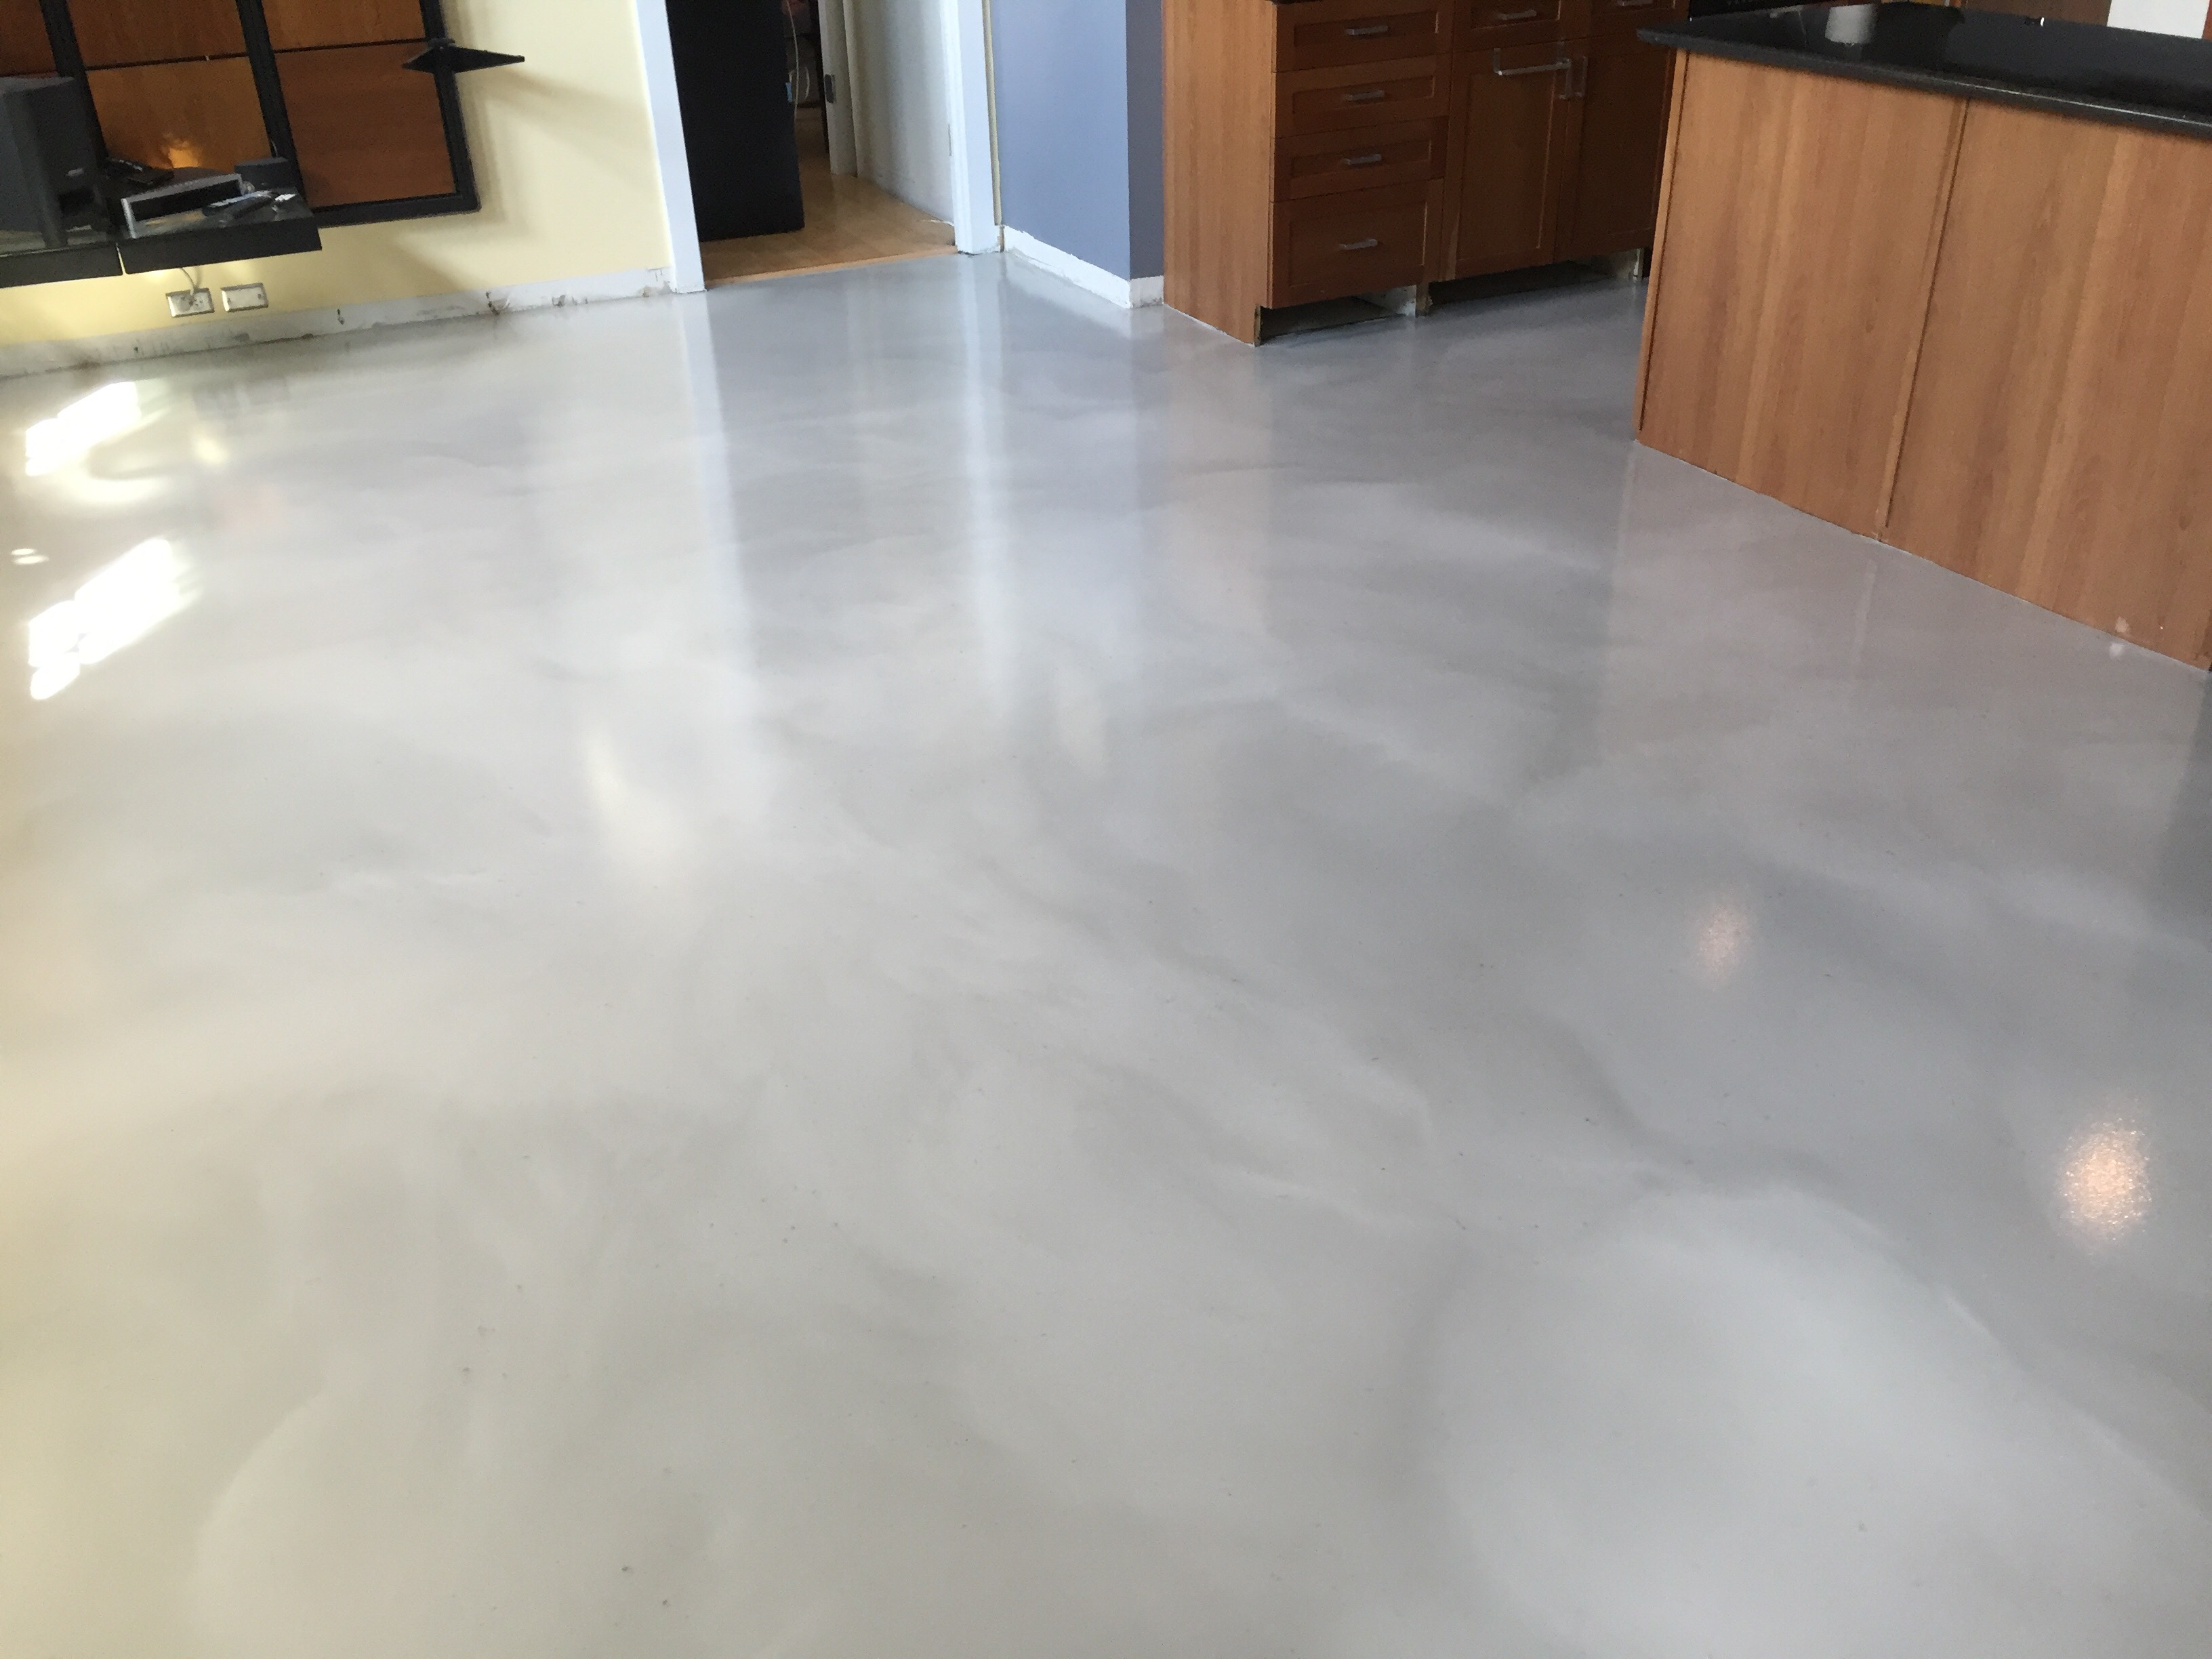 Metallic Epoxy Floor Restoration In Washington Dc